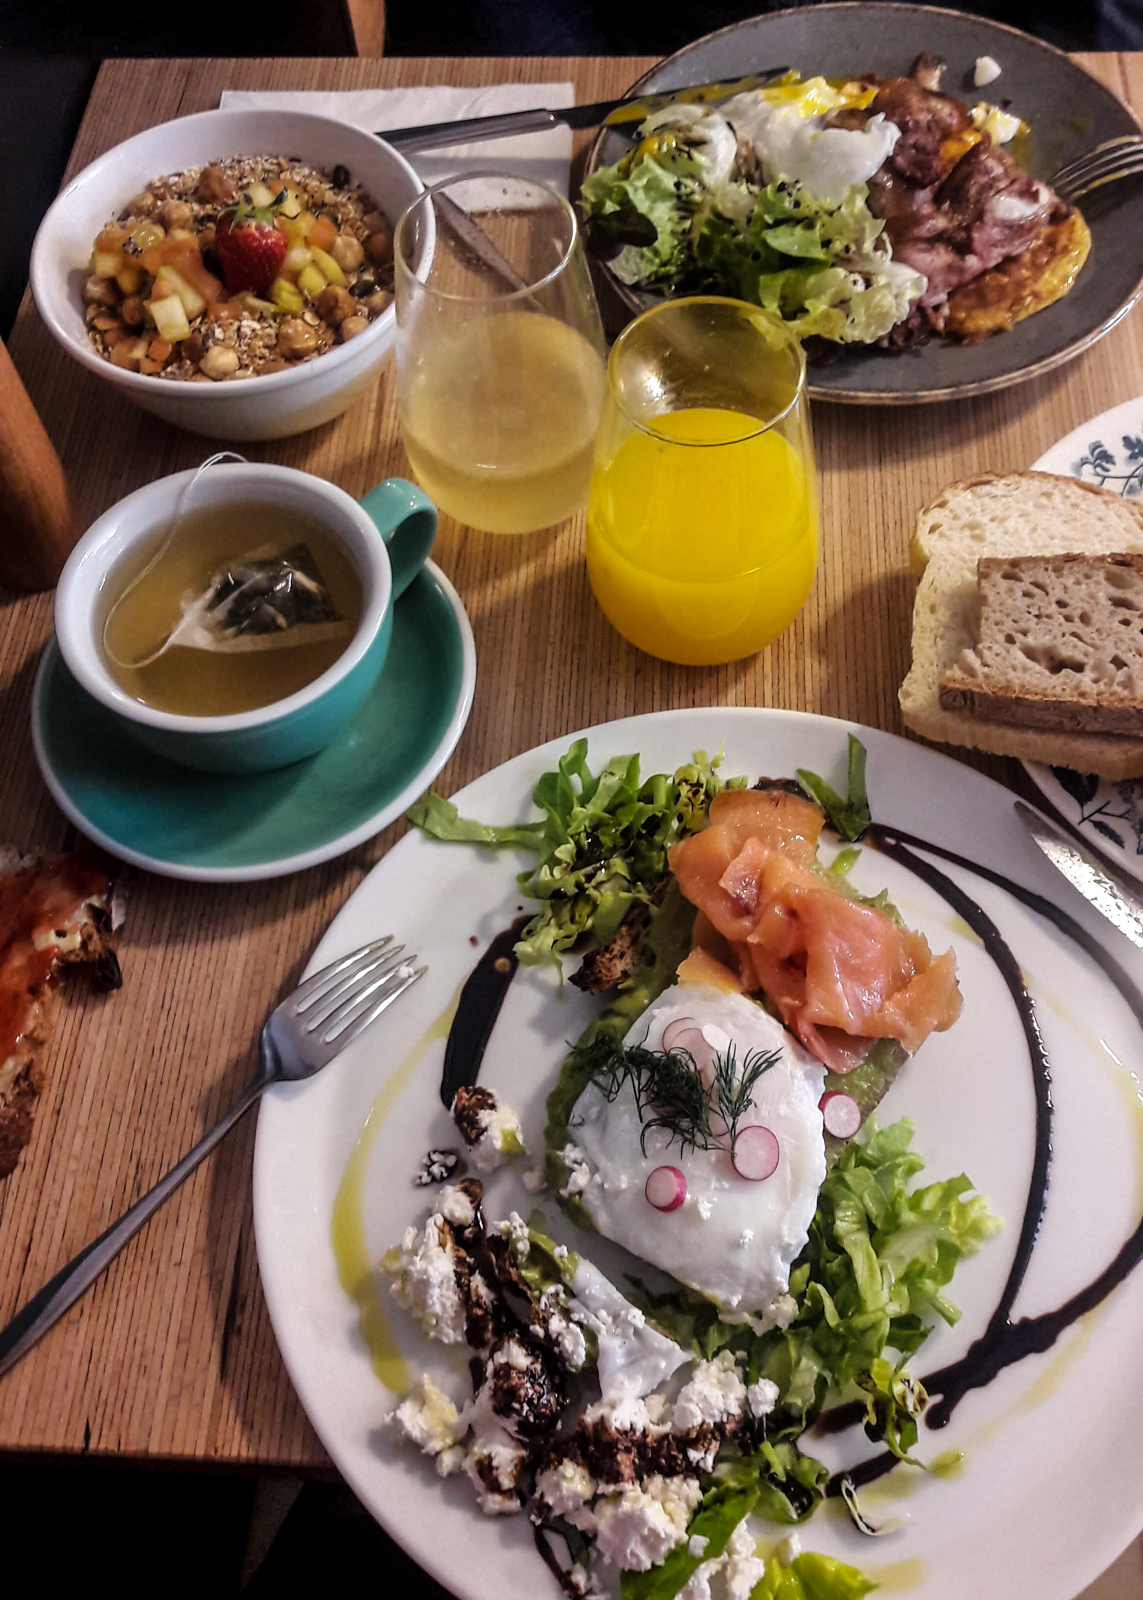 let's brunch lille, brunch lille, bonne adresse brunch lille, tamper lille